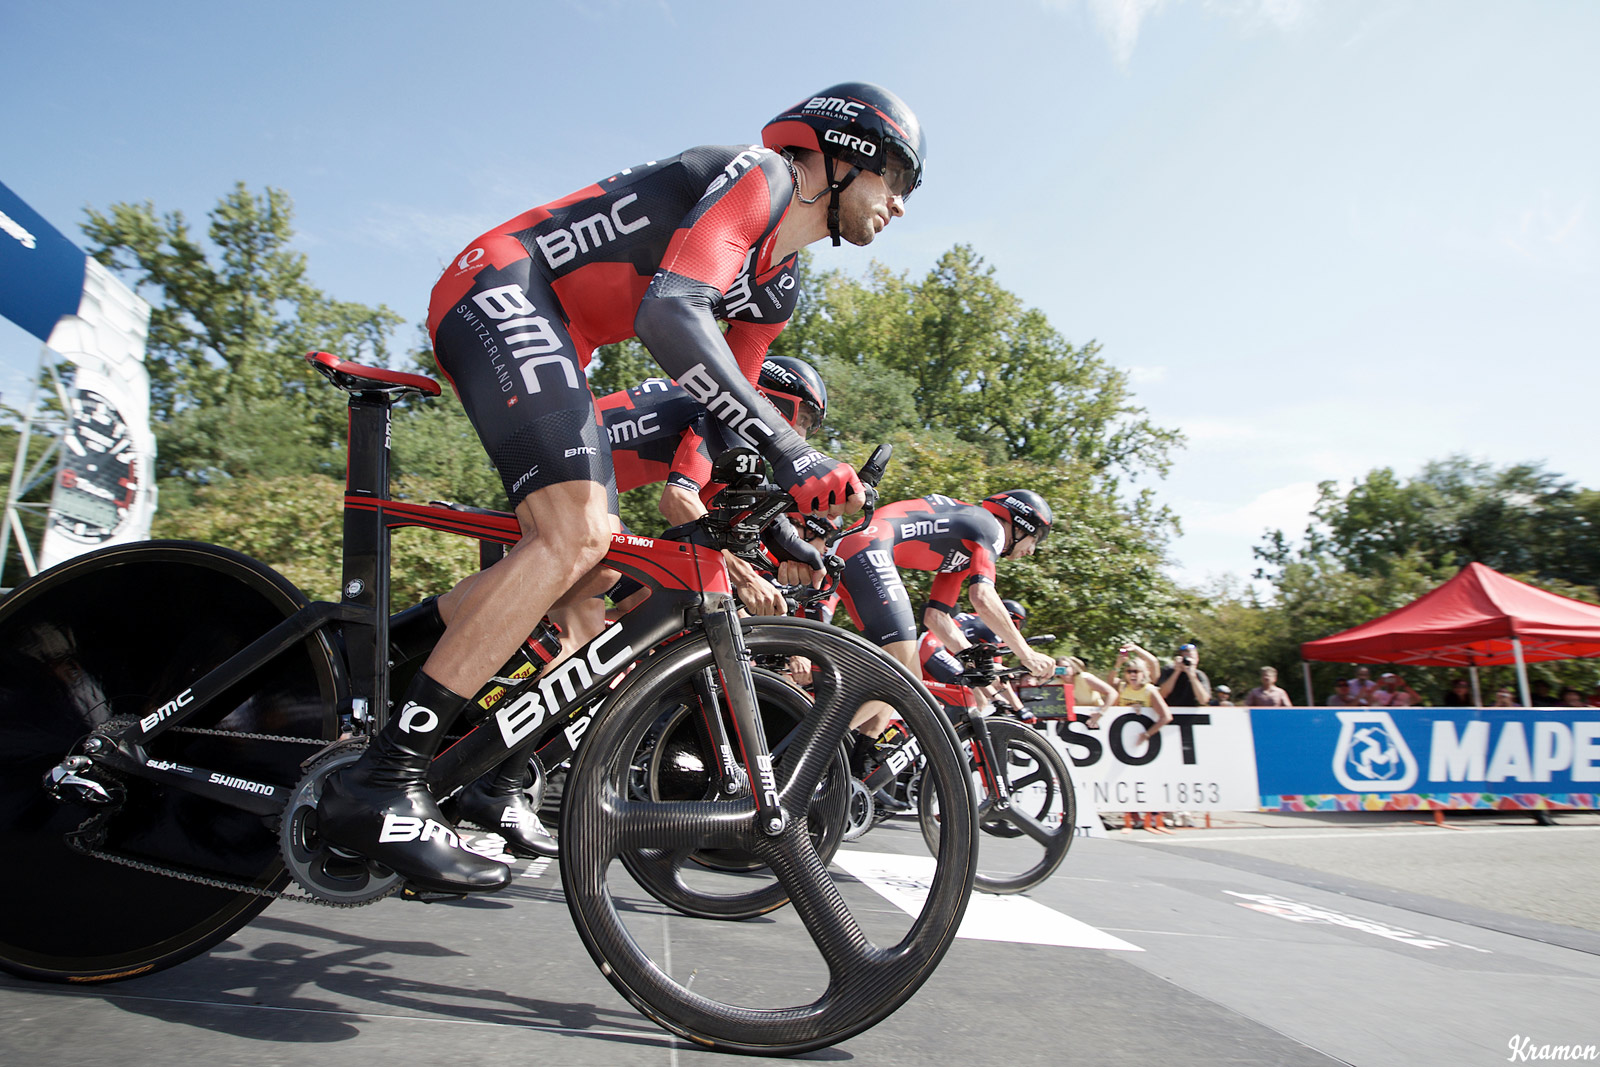 The BMC Racing Team successfully defended its 2014 title in Richmond.